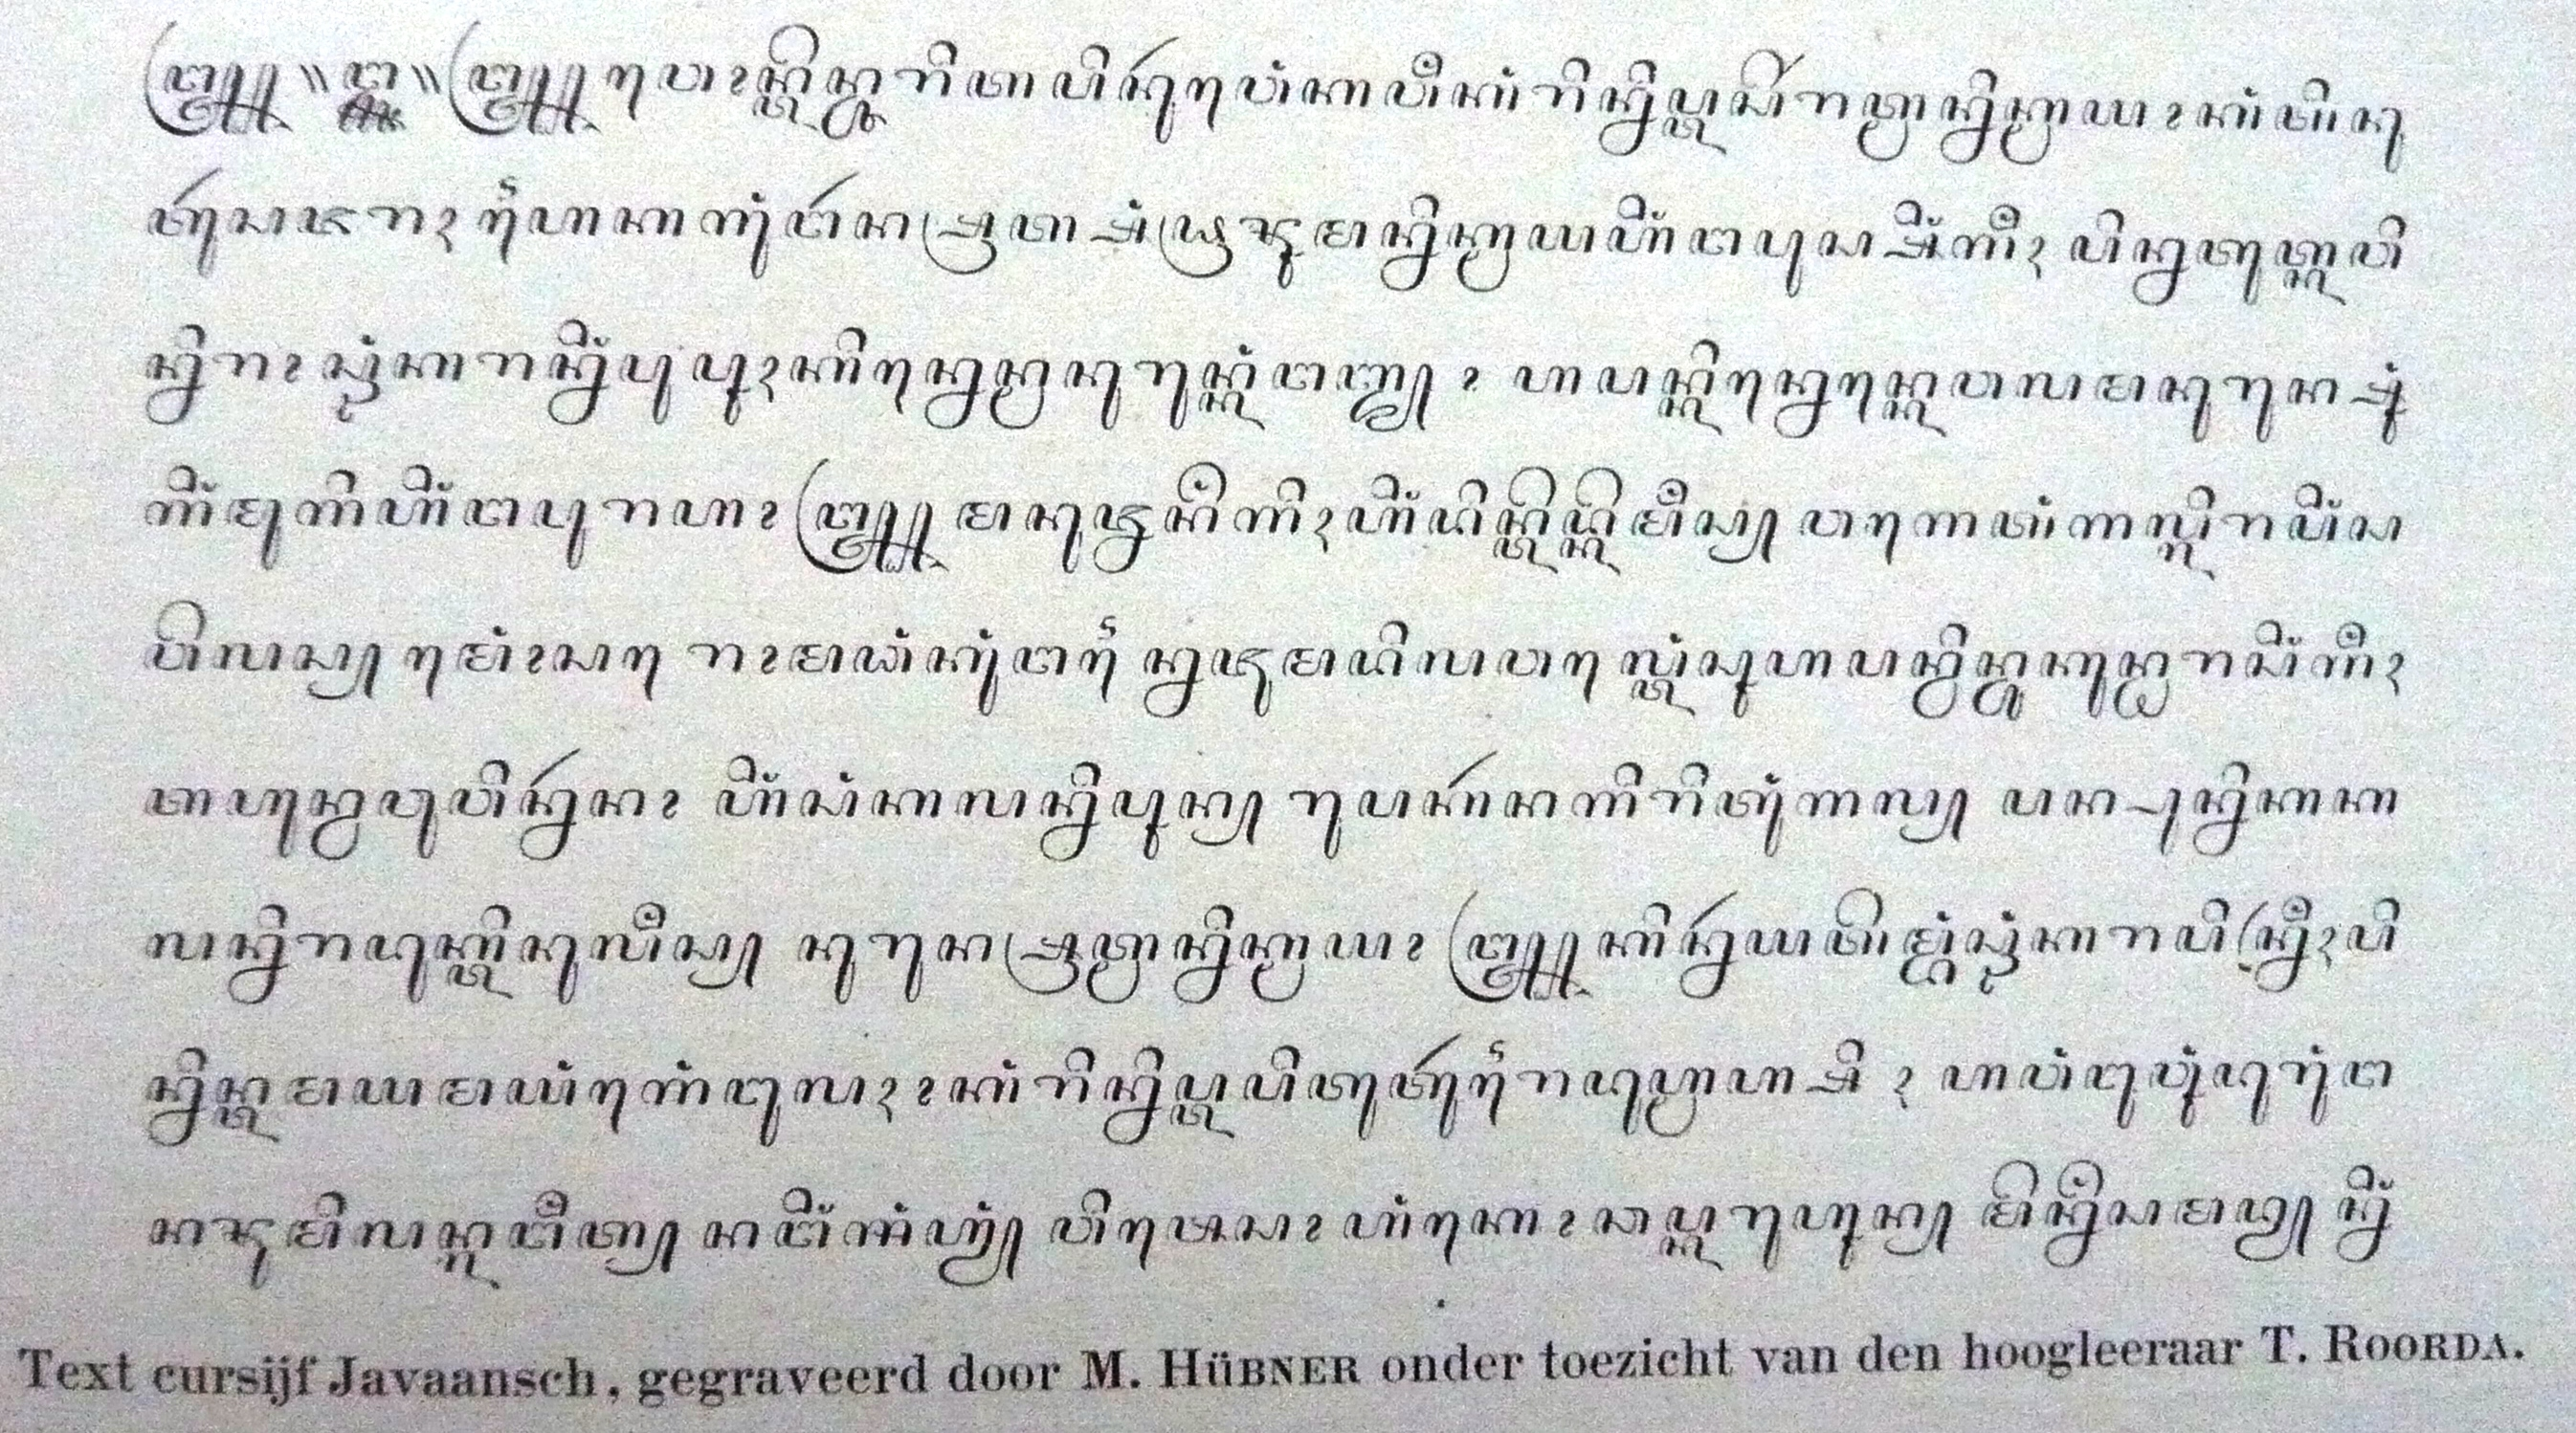 File:Enschede Java letters   Huruf Jawa   by M Hubner and Taco